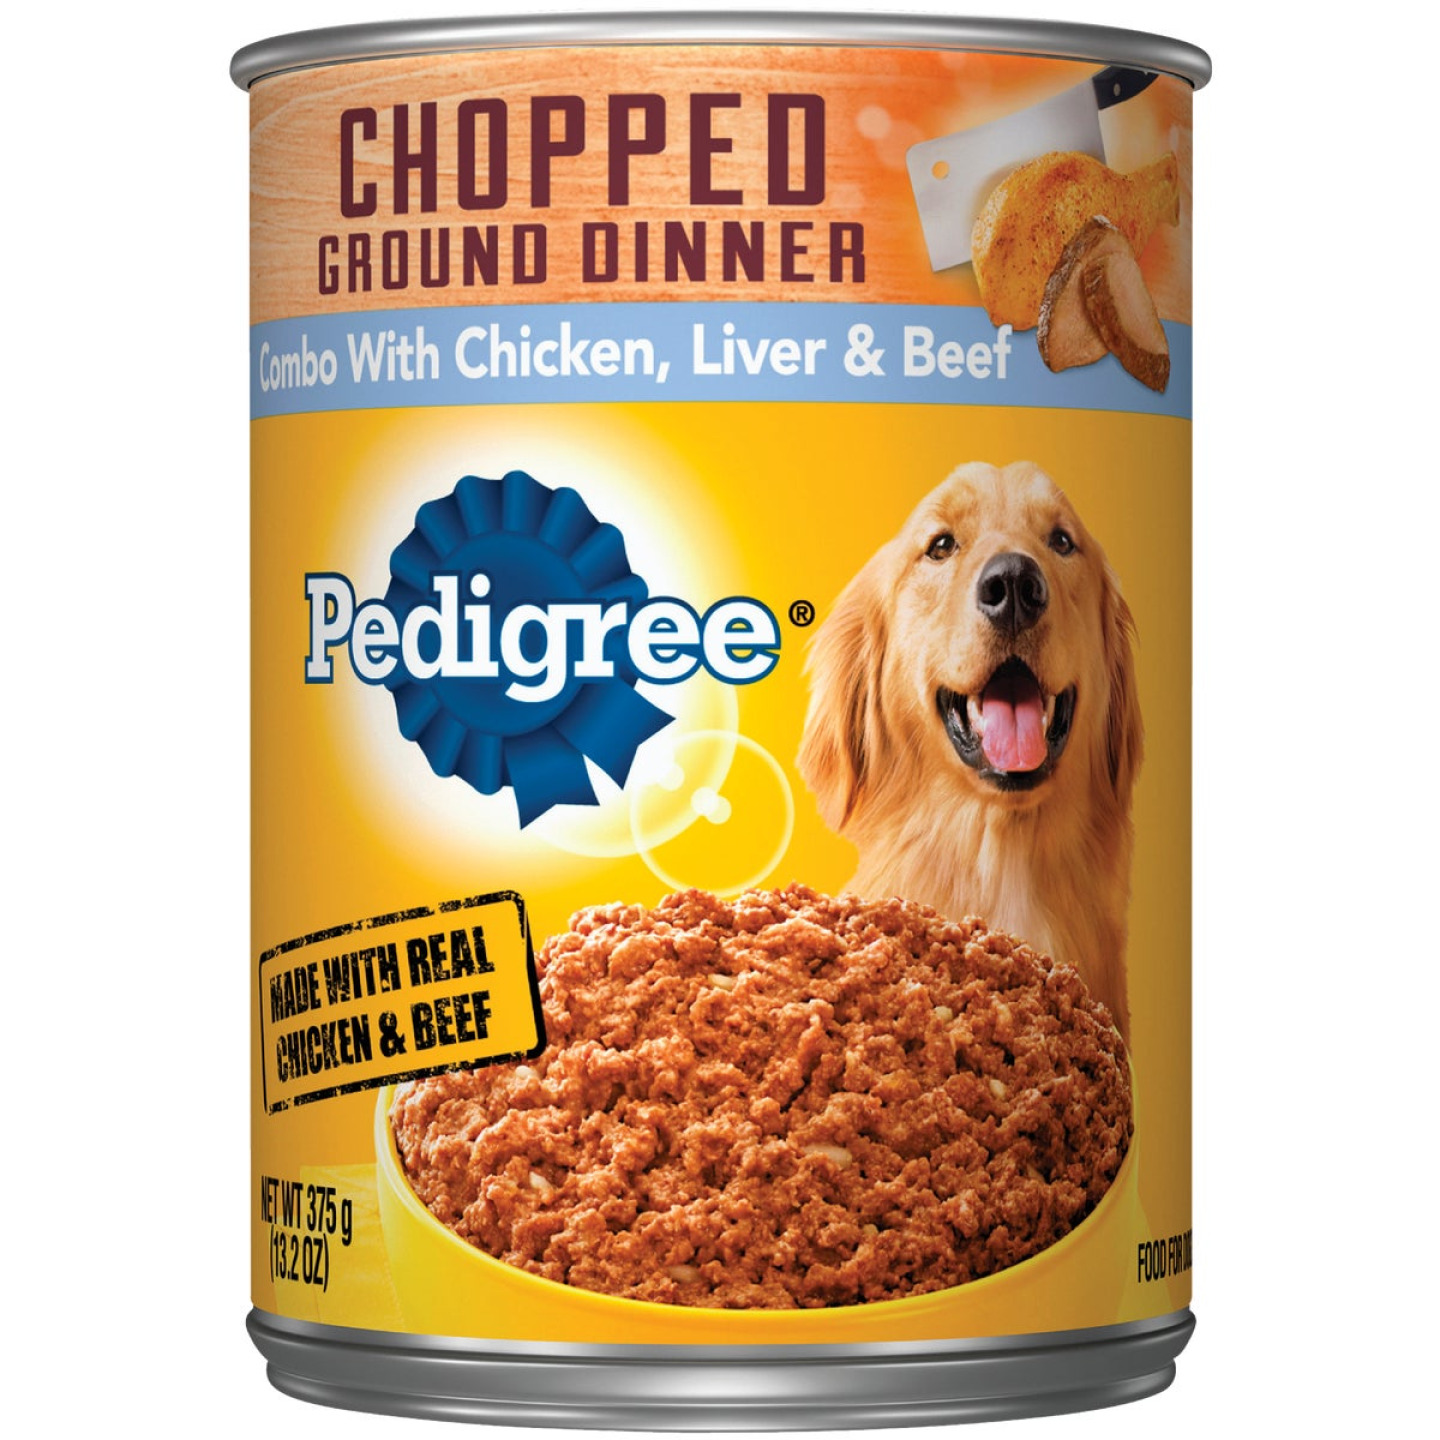 Pedigree Traditional Chopped Ground Dinner Combo with Chicken, Liver, & Beef Wet Dog Food, 13.2 Oz. Image 1